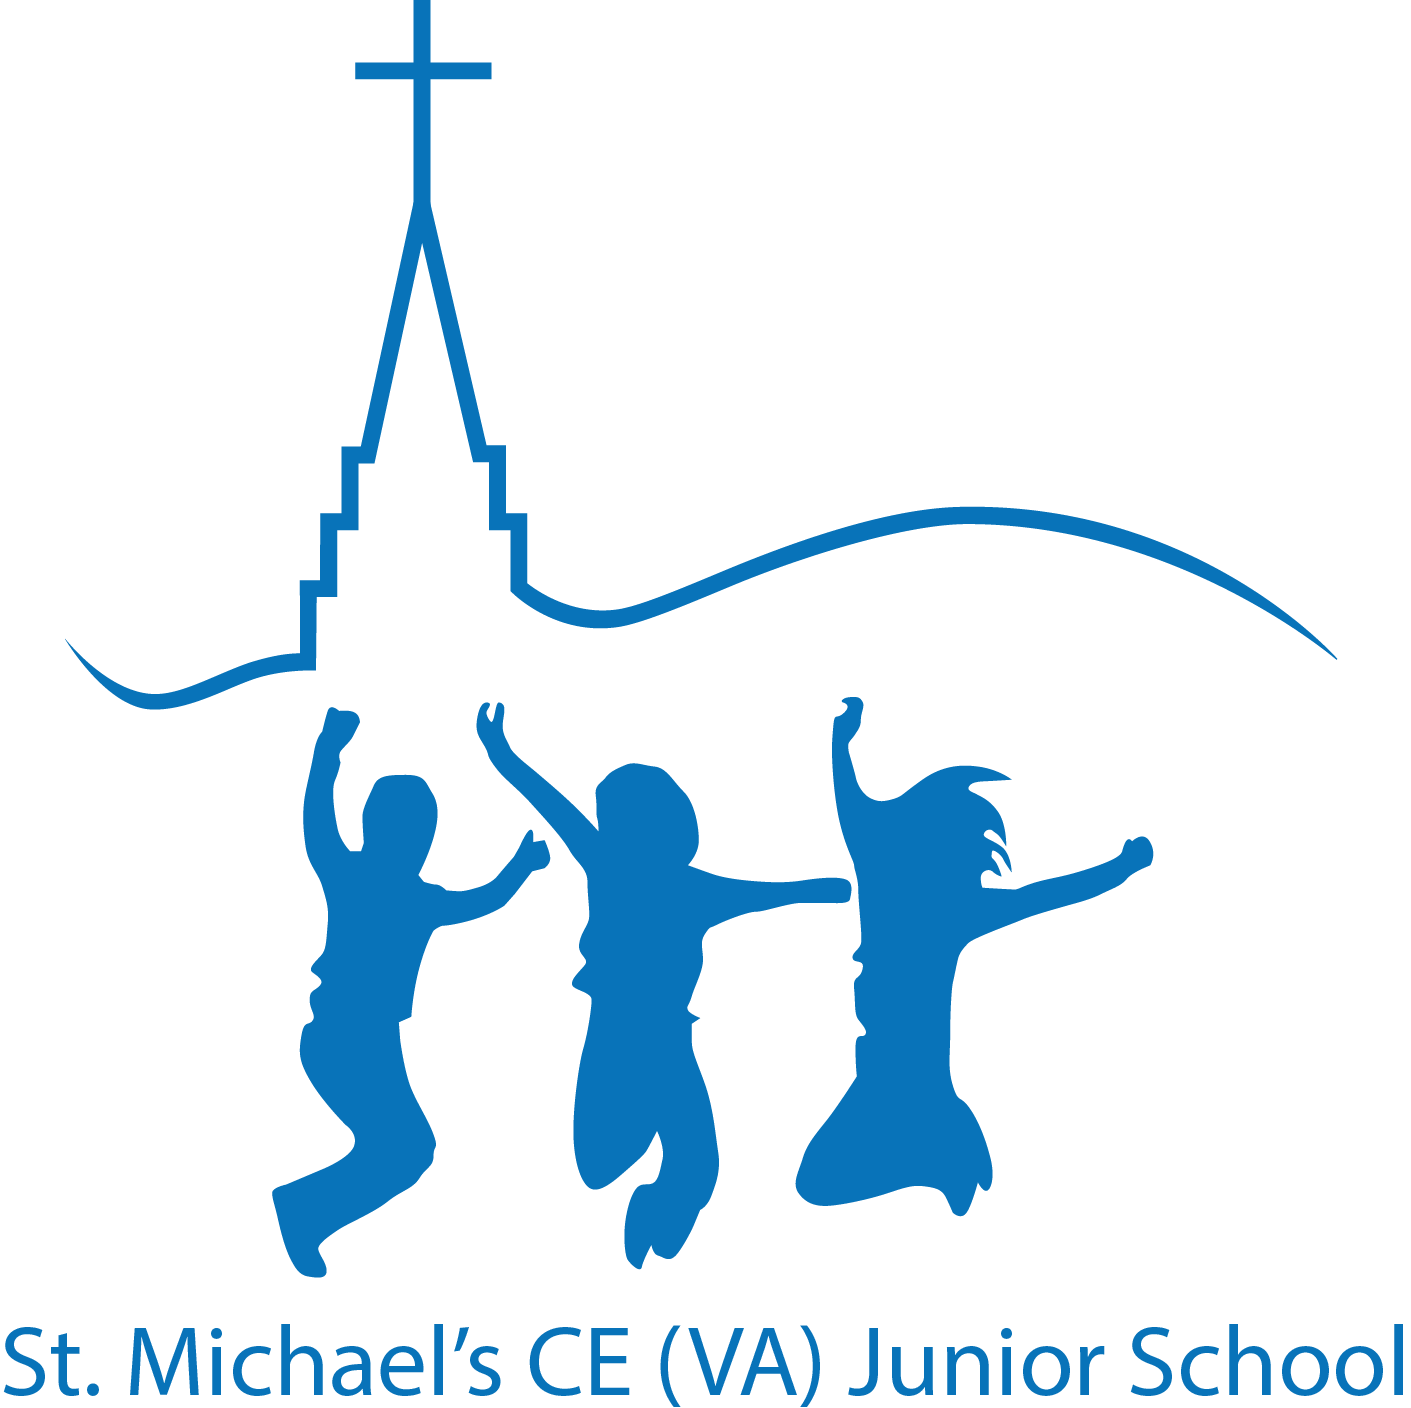 St. Michael's CE (VA) Junior School